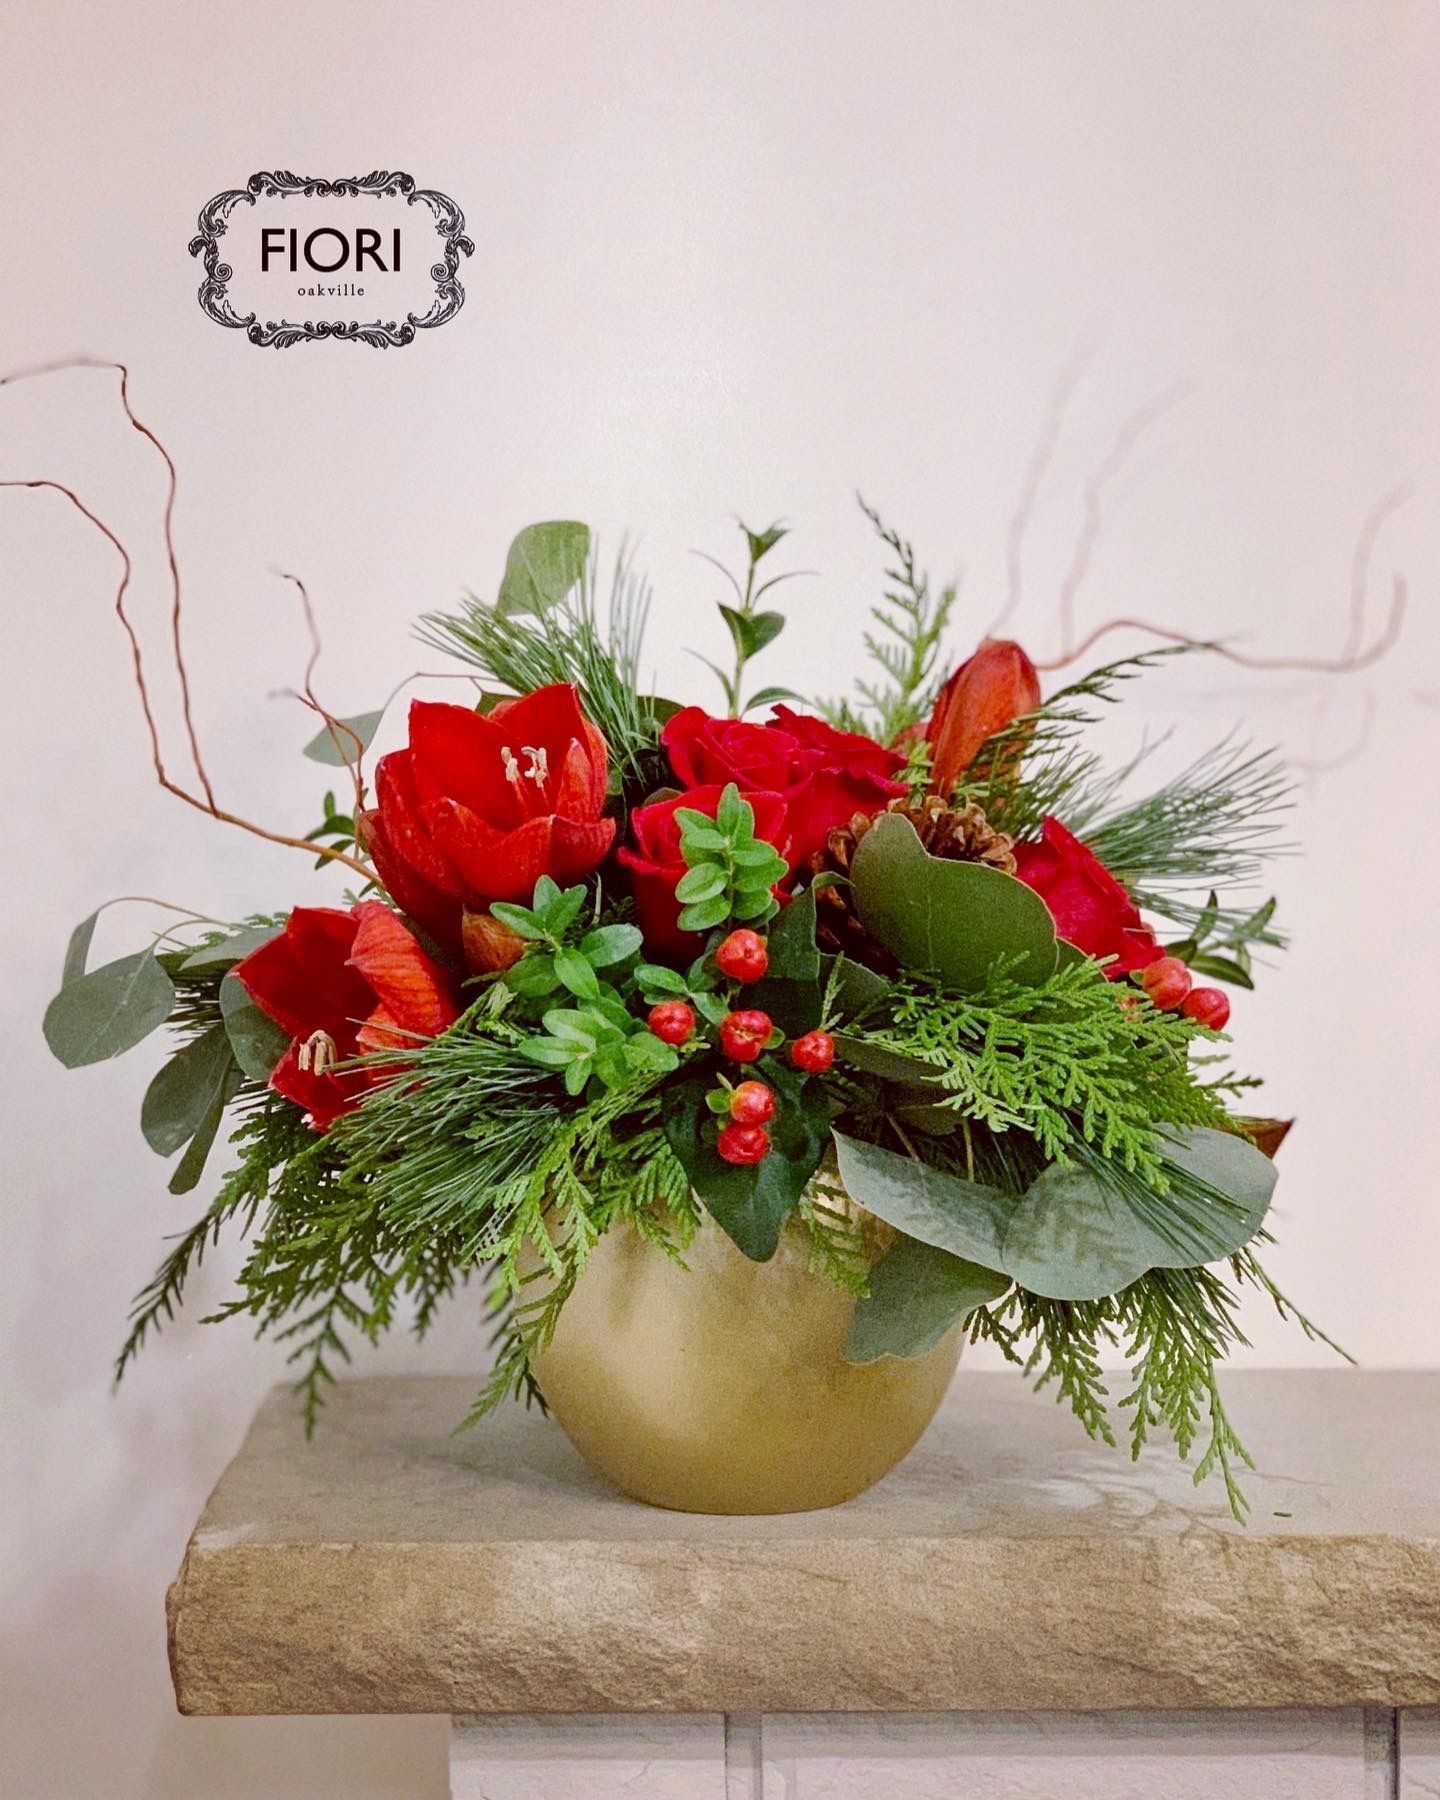 Our Christmas Red flower arrangement includes red